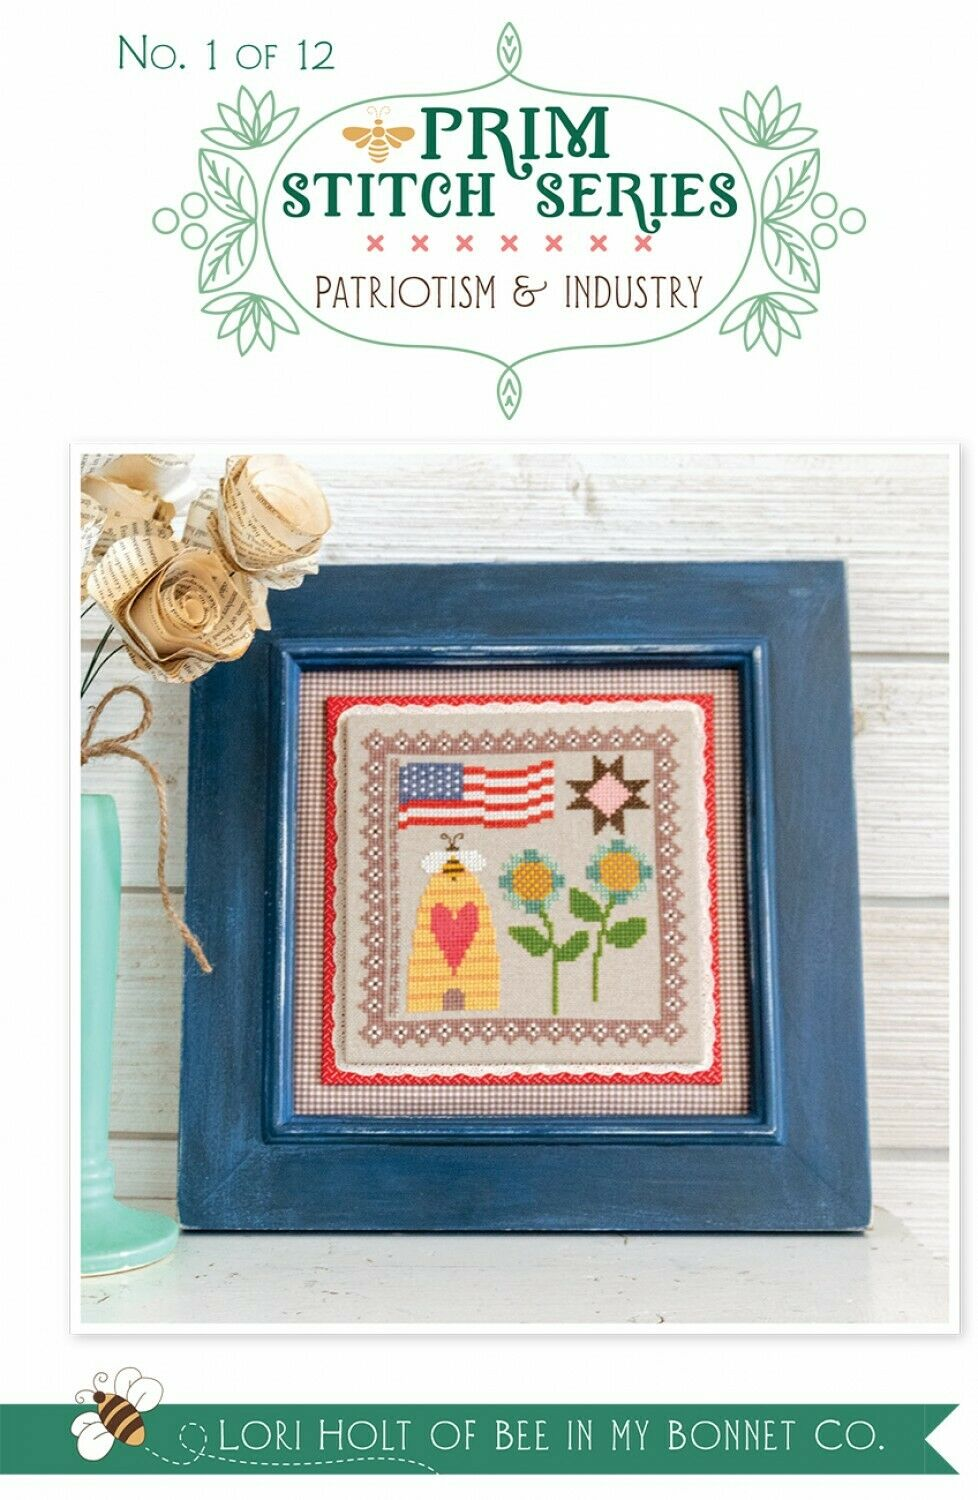 PRIM STITCH SERIES Patterns by Lori Holt of Bee in my Bonnet Co